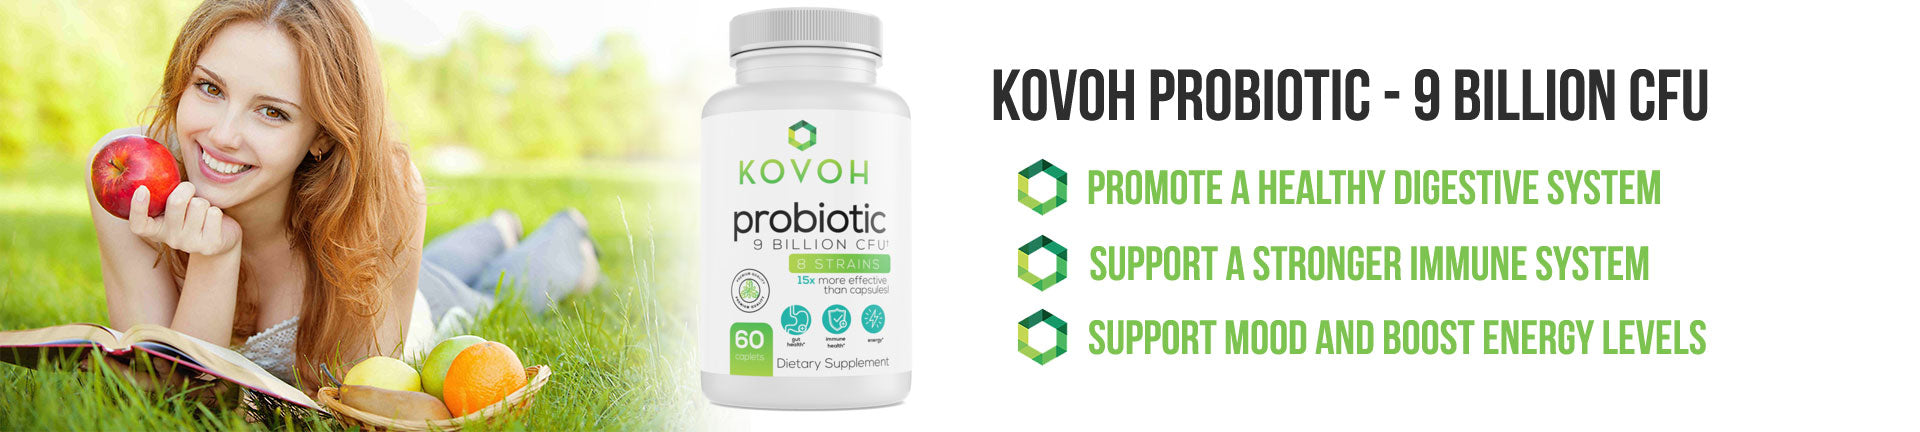 KOVOH Probiotic - 9 Billion CFU